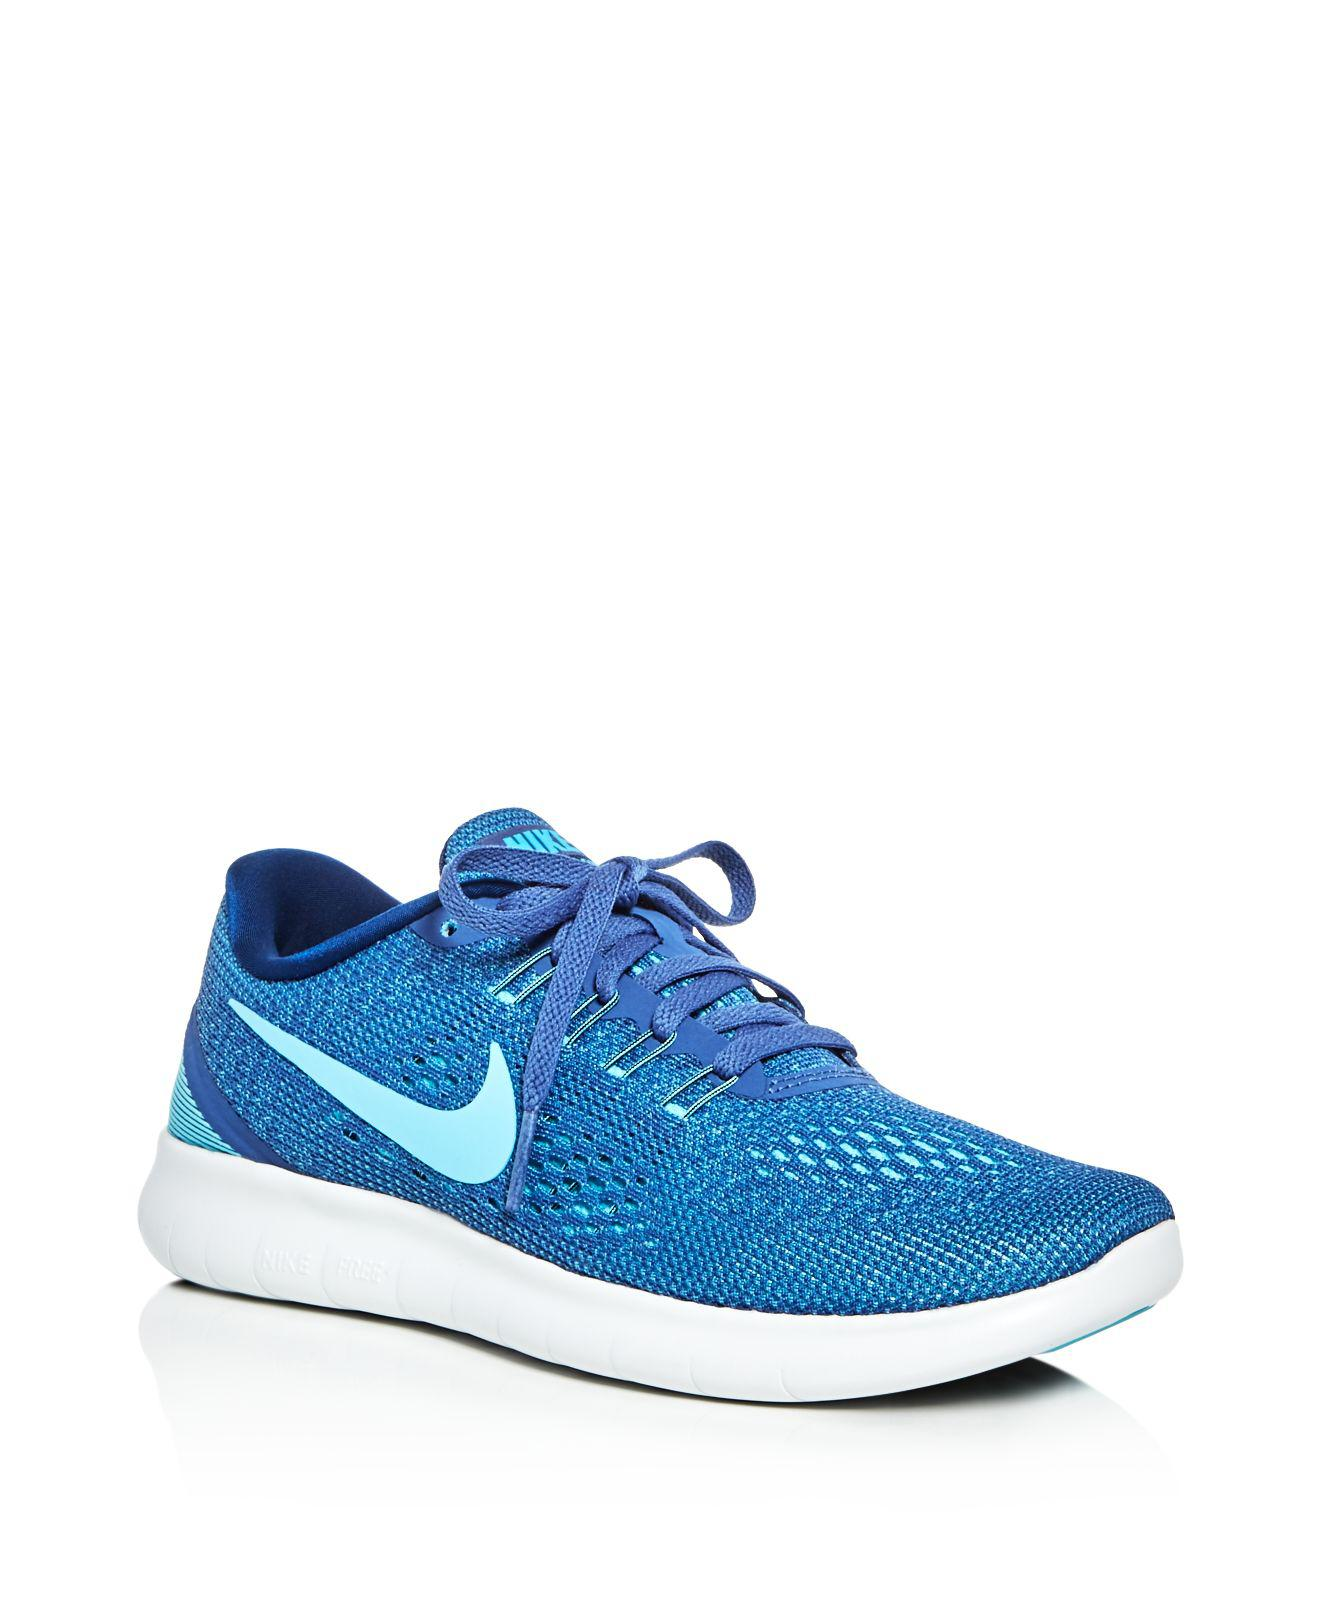 74ee25ad733 Lyst - Nike Women s Free Run Natural Lace Up Sneakers in Blue for Men